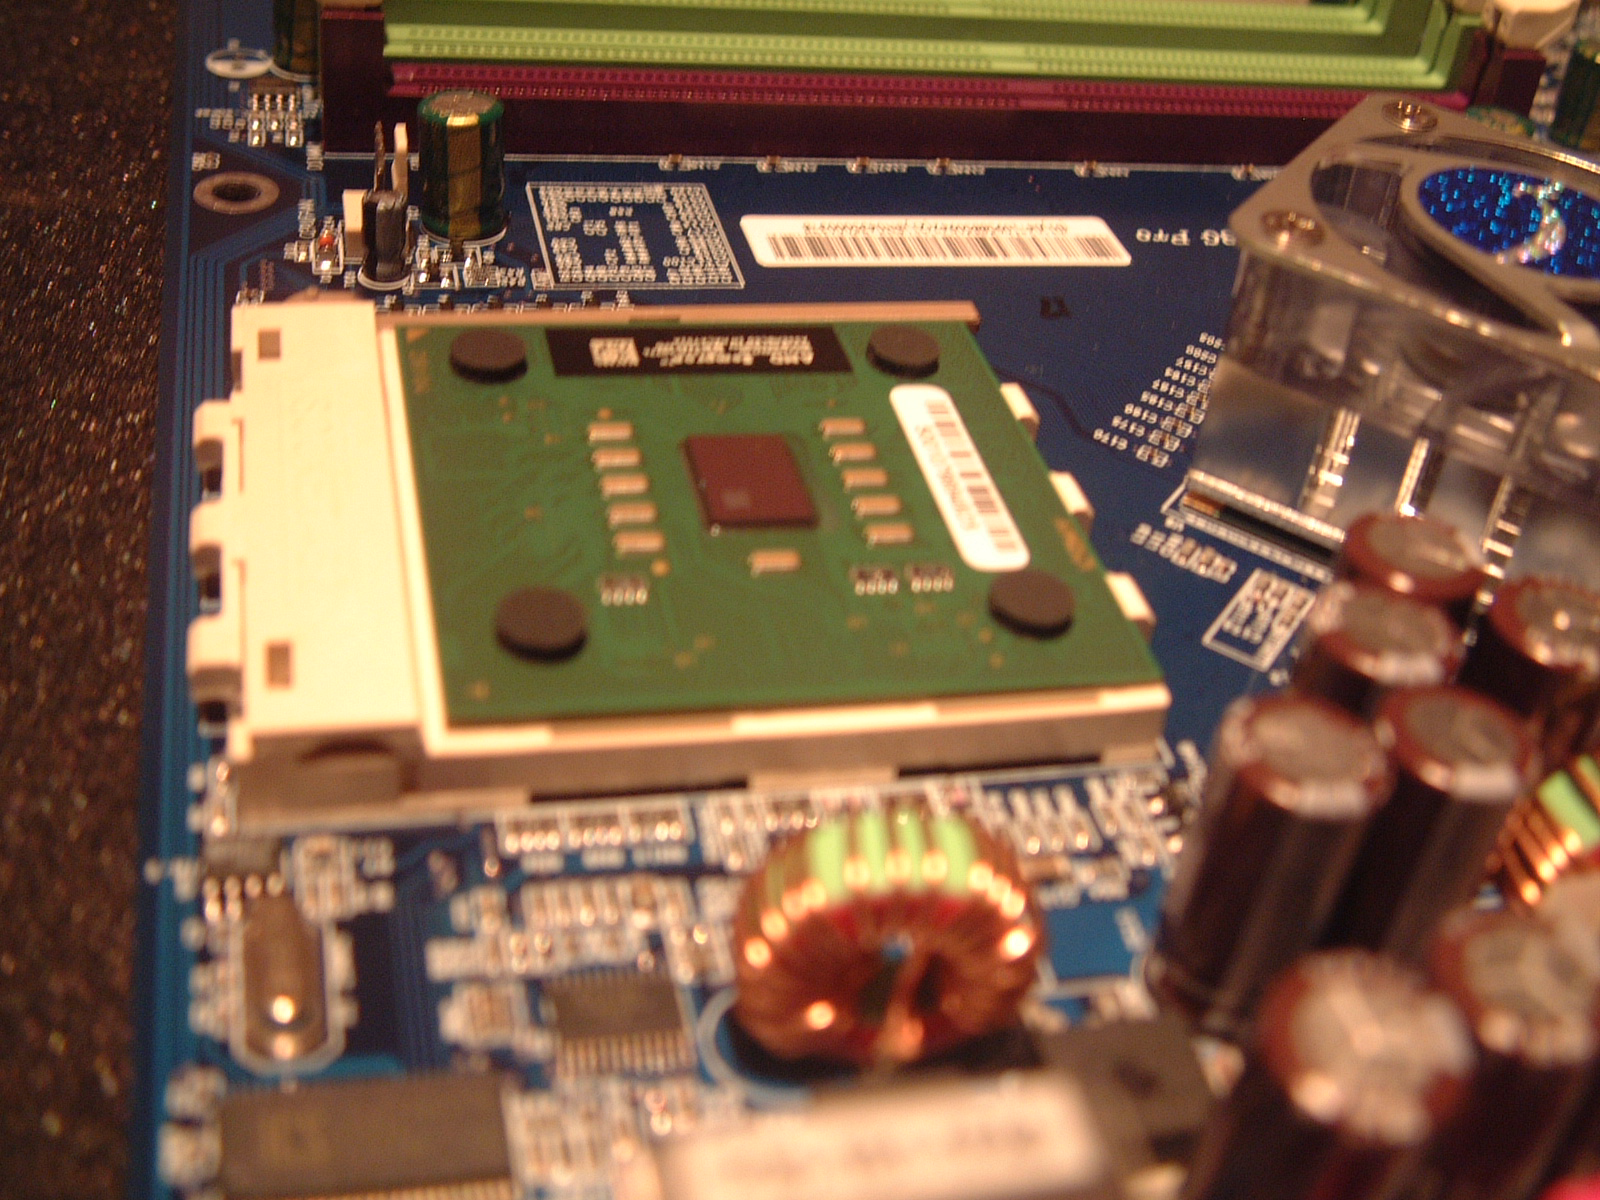 Jupiter hardware - The CPU is added to the socket.